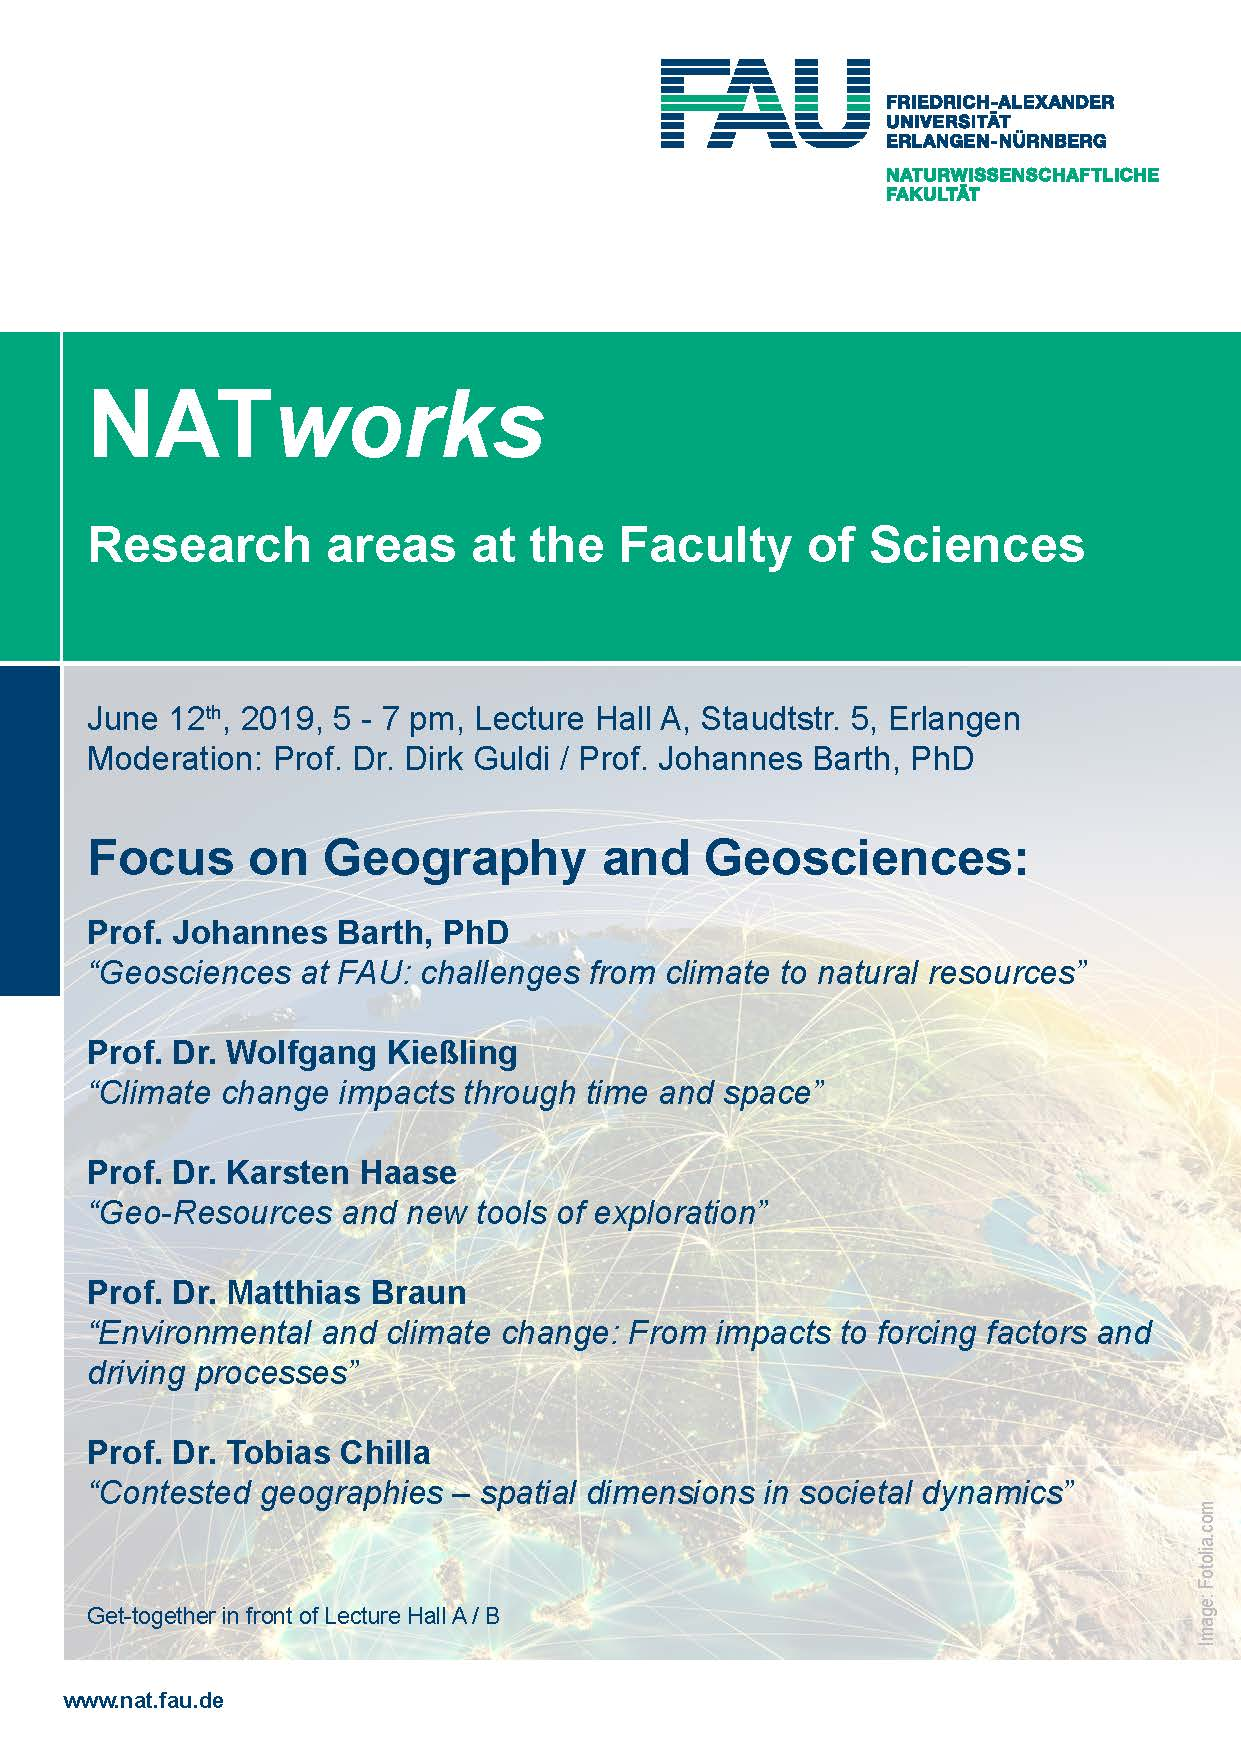 Programm NATworks 12.6.19, siehe: https://www.nat.fau.de/files/2019/06/natworks-03_Geo2019_web.pdf